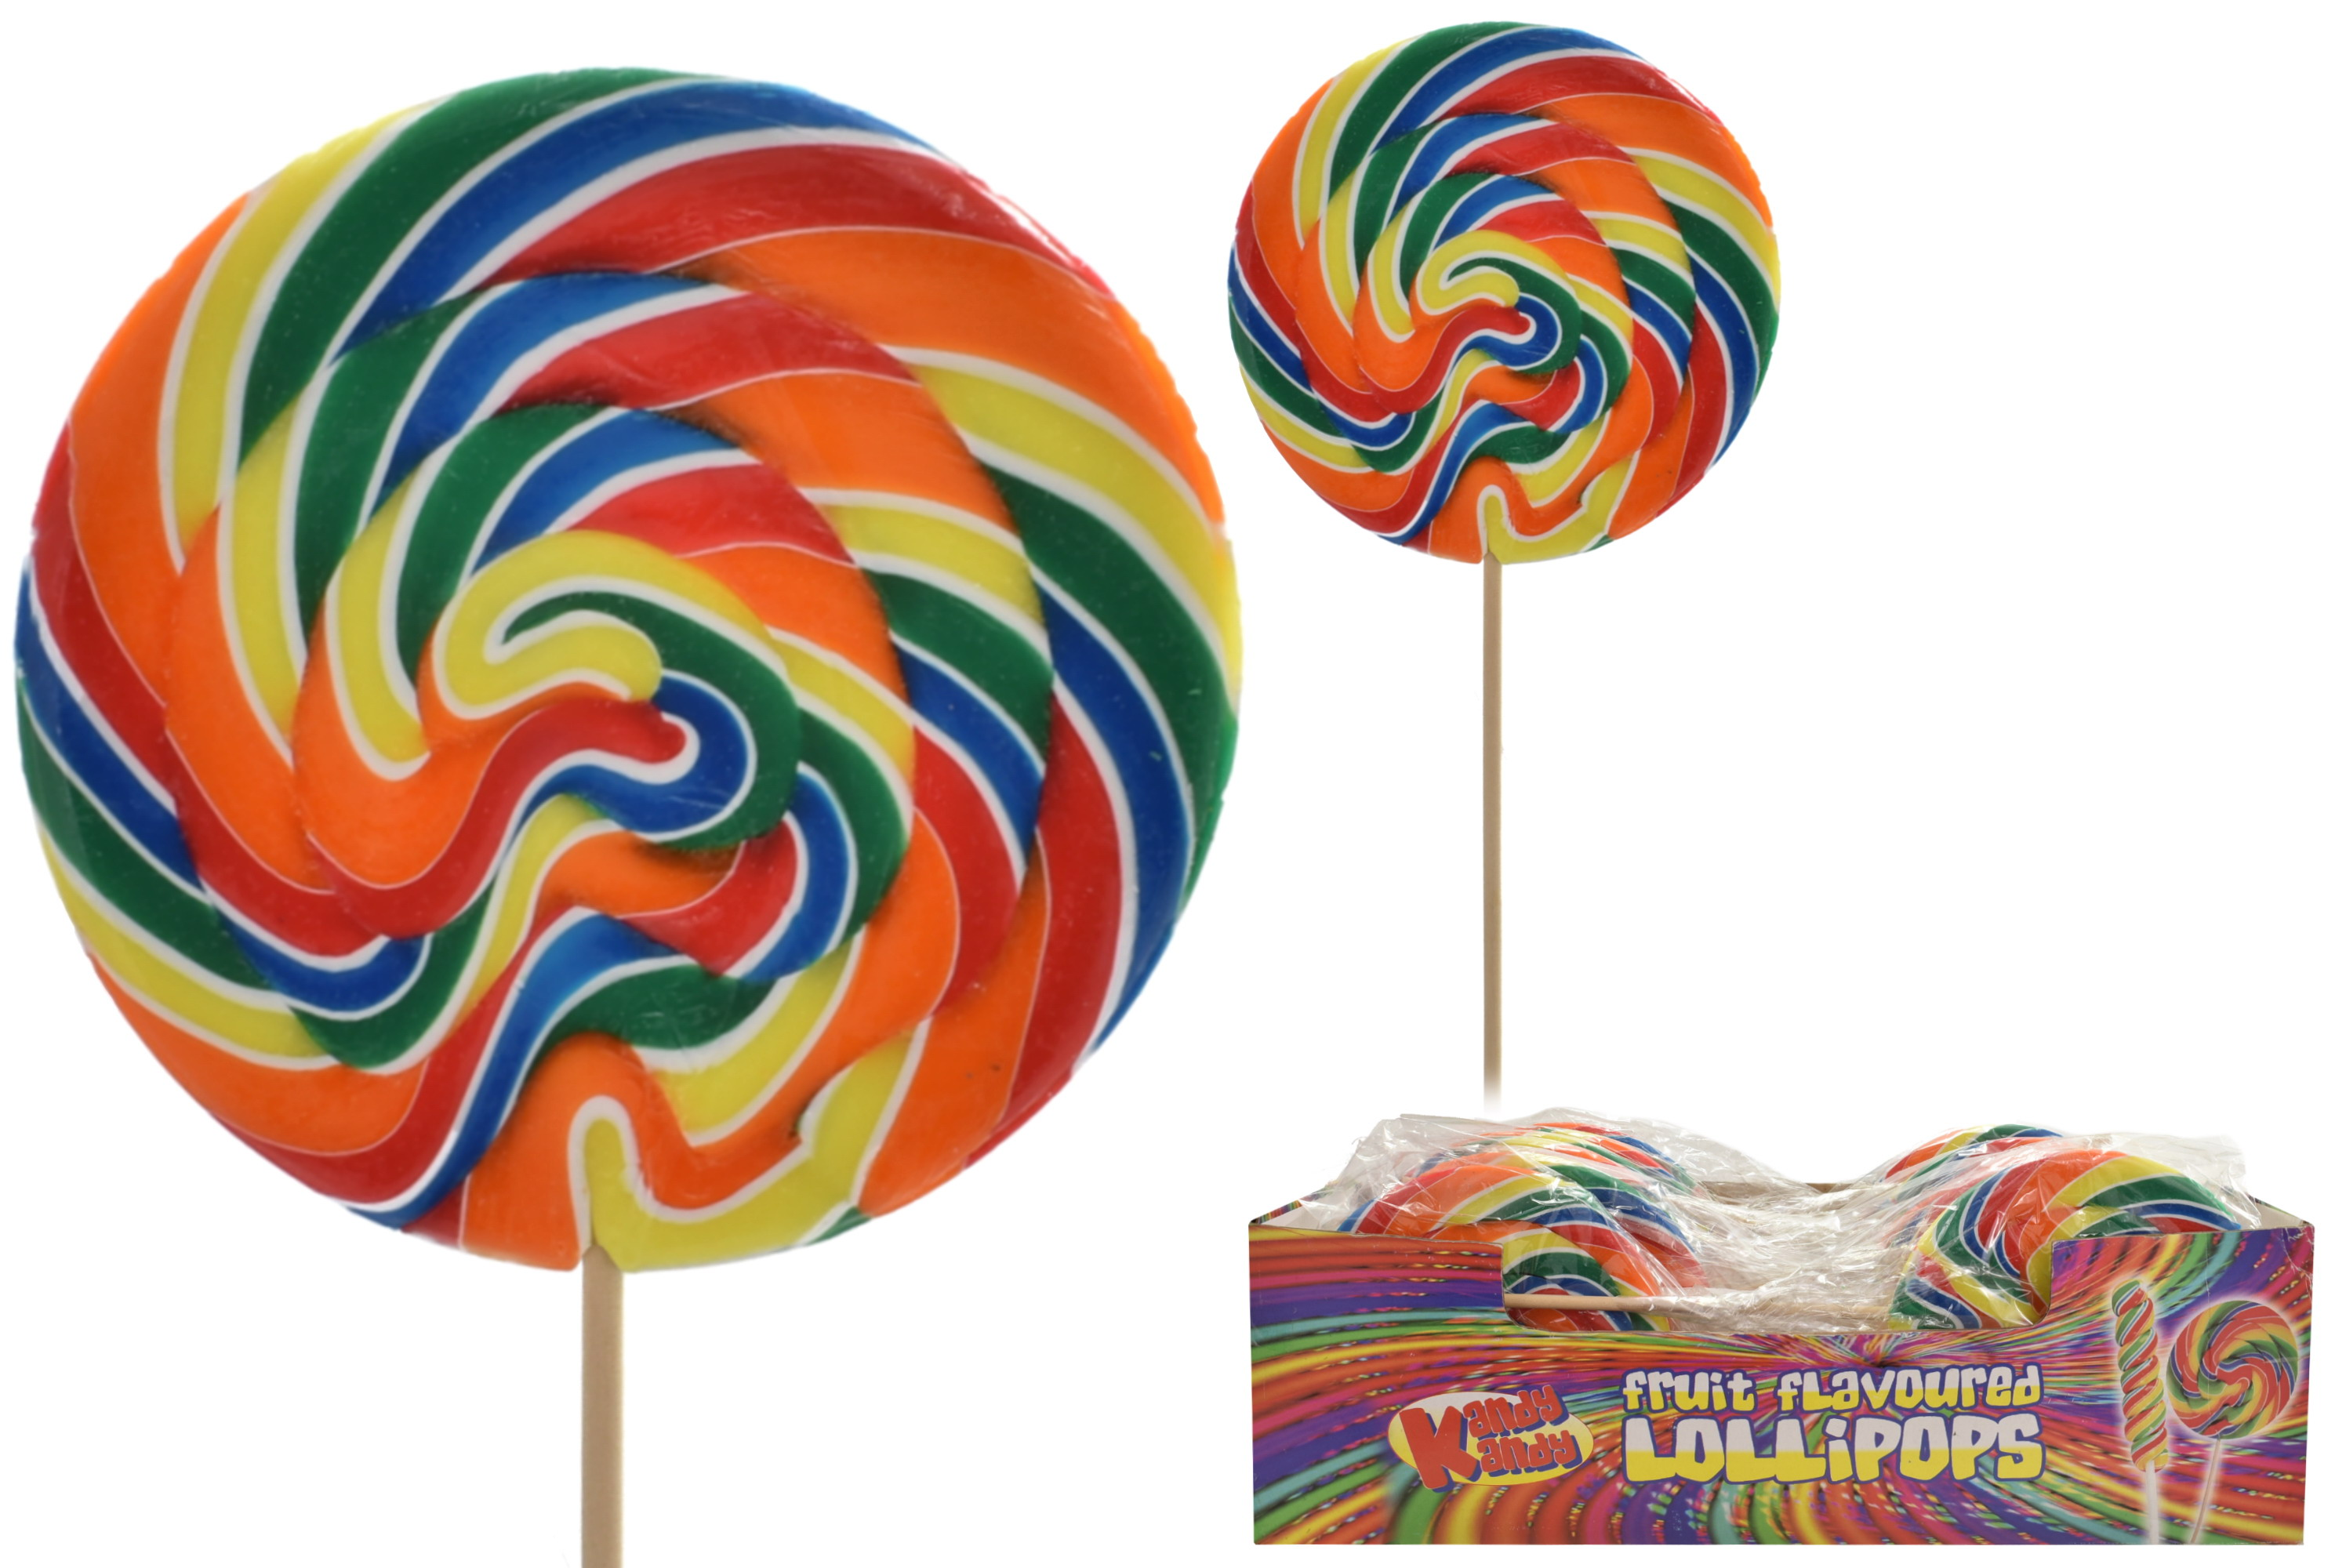 Giant Fruit Catherine Wheel Lolly (175gm) - Display Box